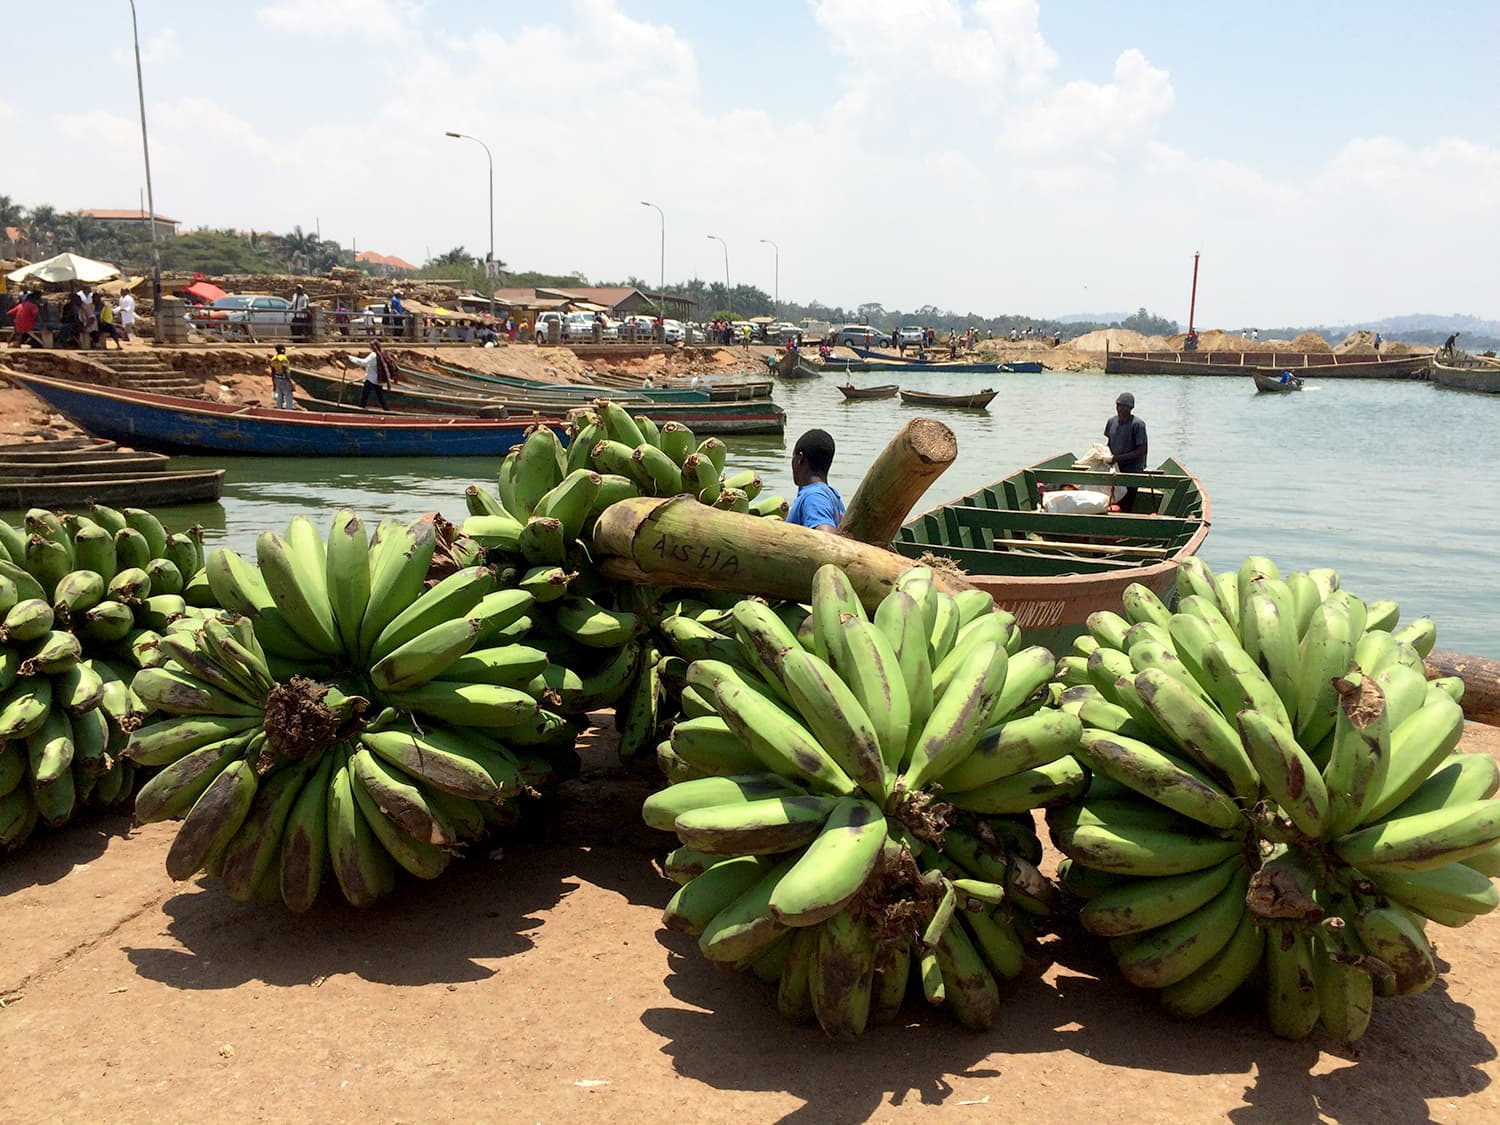 Visiting the magnificent Lake Victoria and discovering massive bananas.